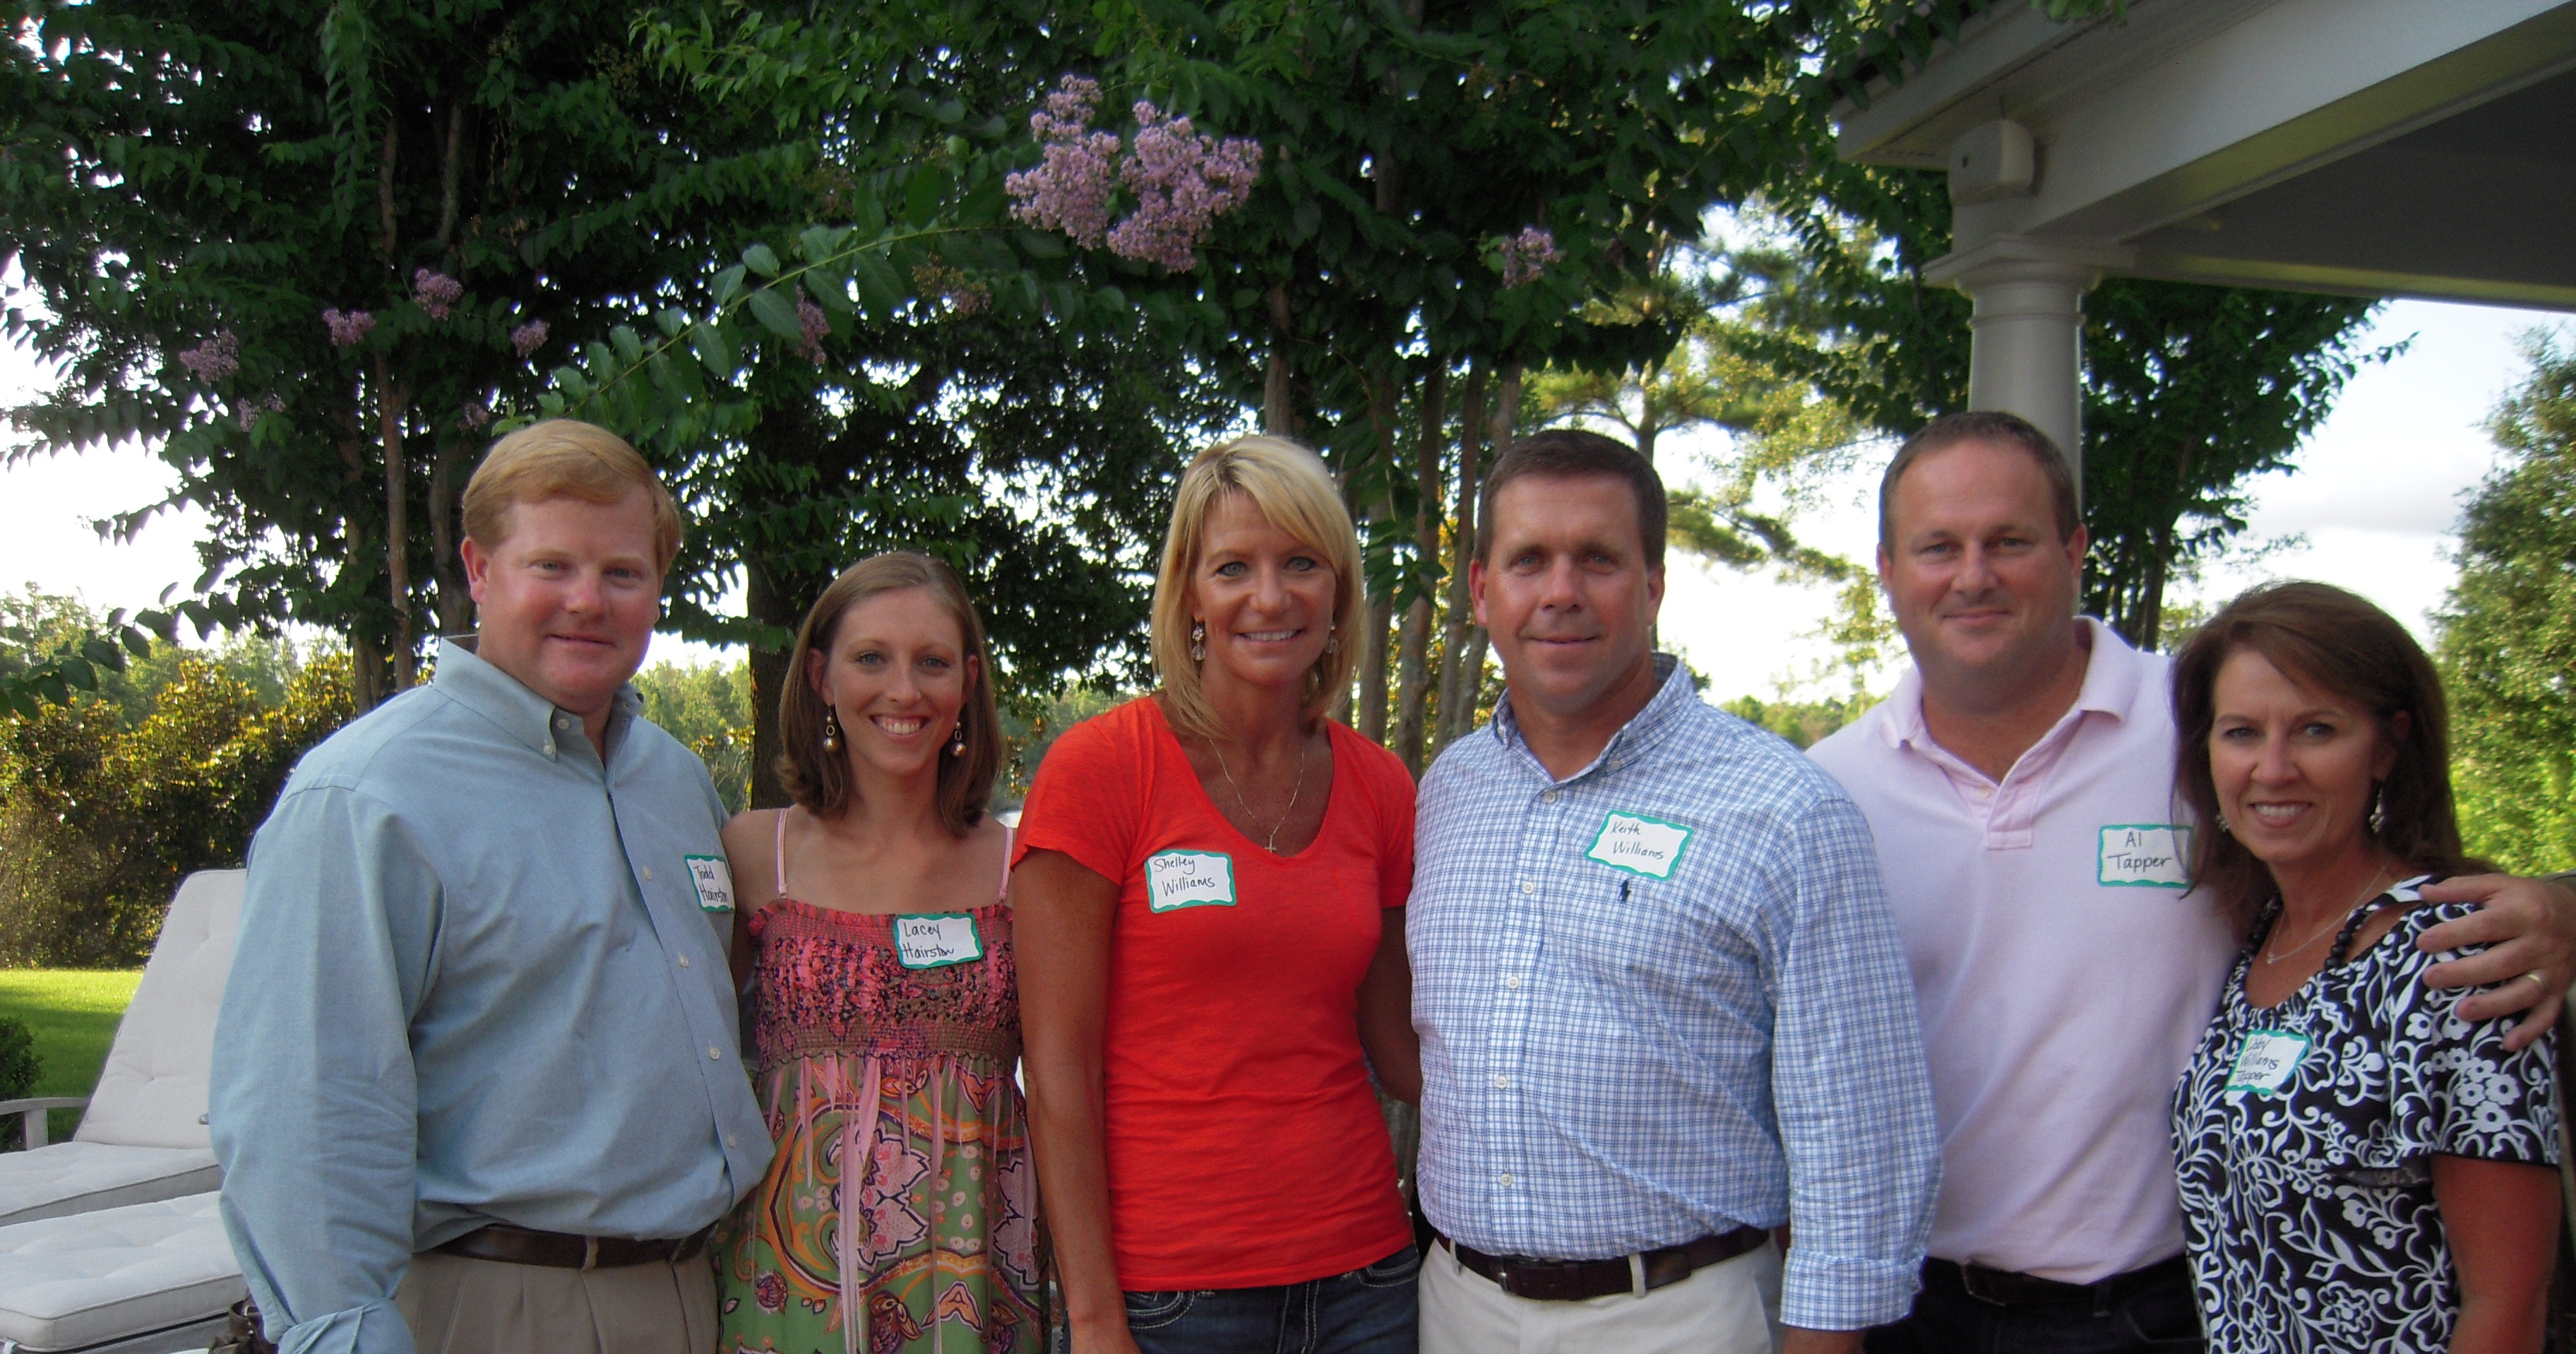 PHOTO:  From left,  Todd Hairston, Lacey Hairston, Shelley Williams, Keith Williams, Al Tapper, and Libby Williams Tapper at a past Gulf Coast event at the home of Dr. Johnny Mallett.